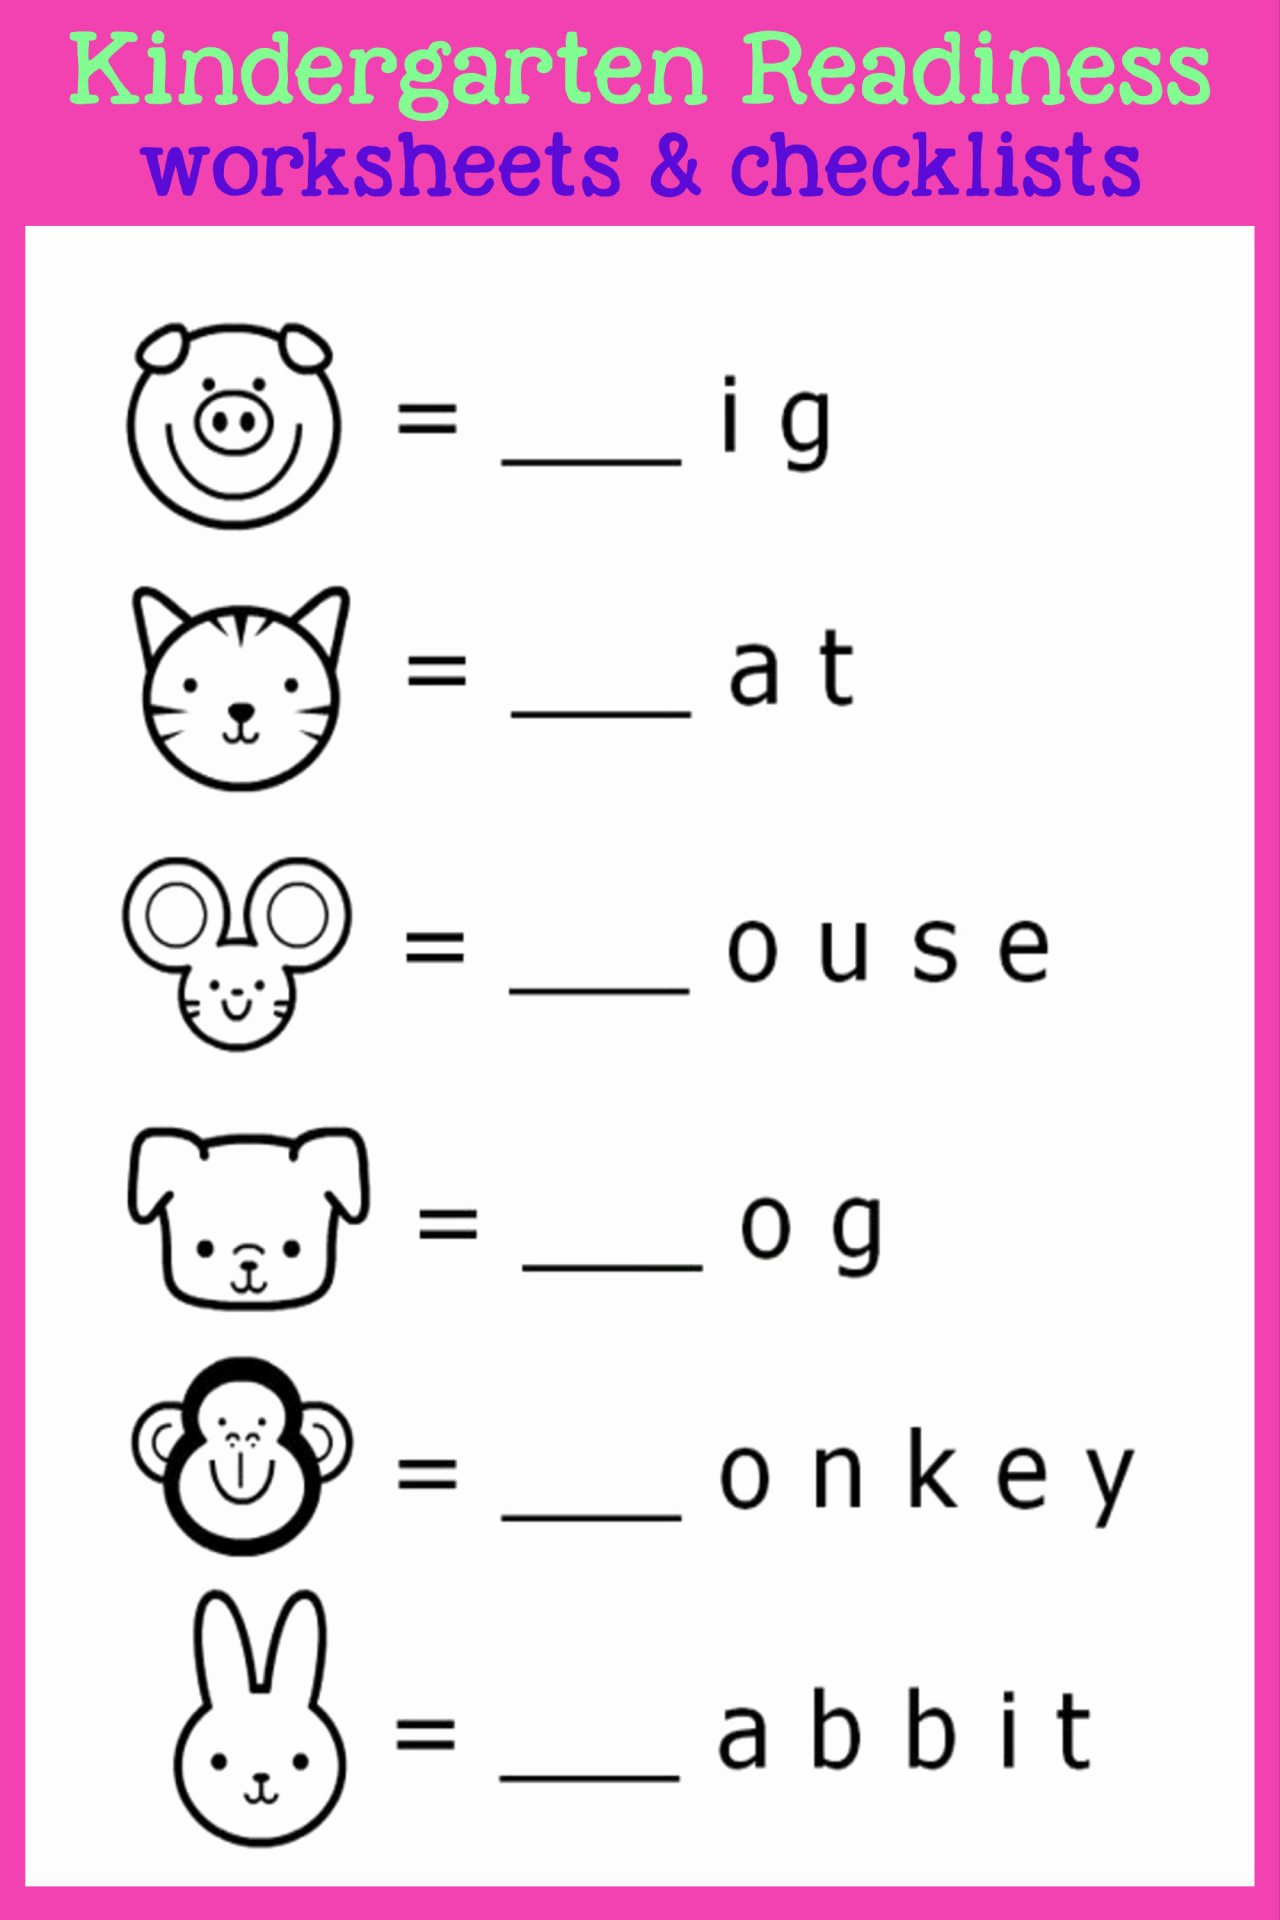 Readiness Worksheets for Preschoolers Free Kindergarten Readiness Checklists Free Printable Prep